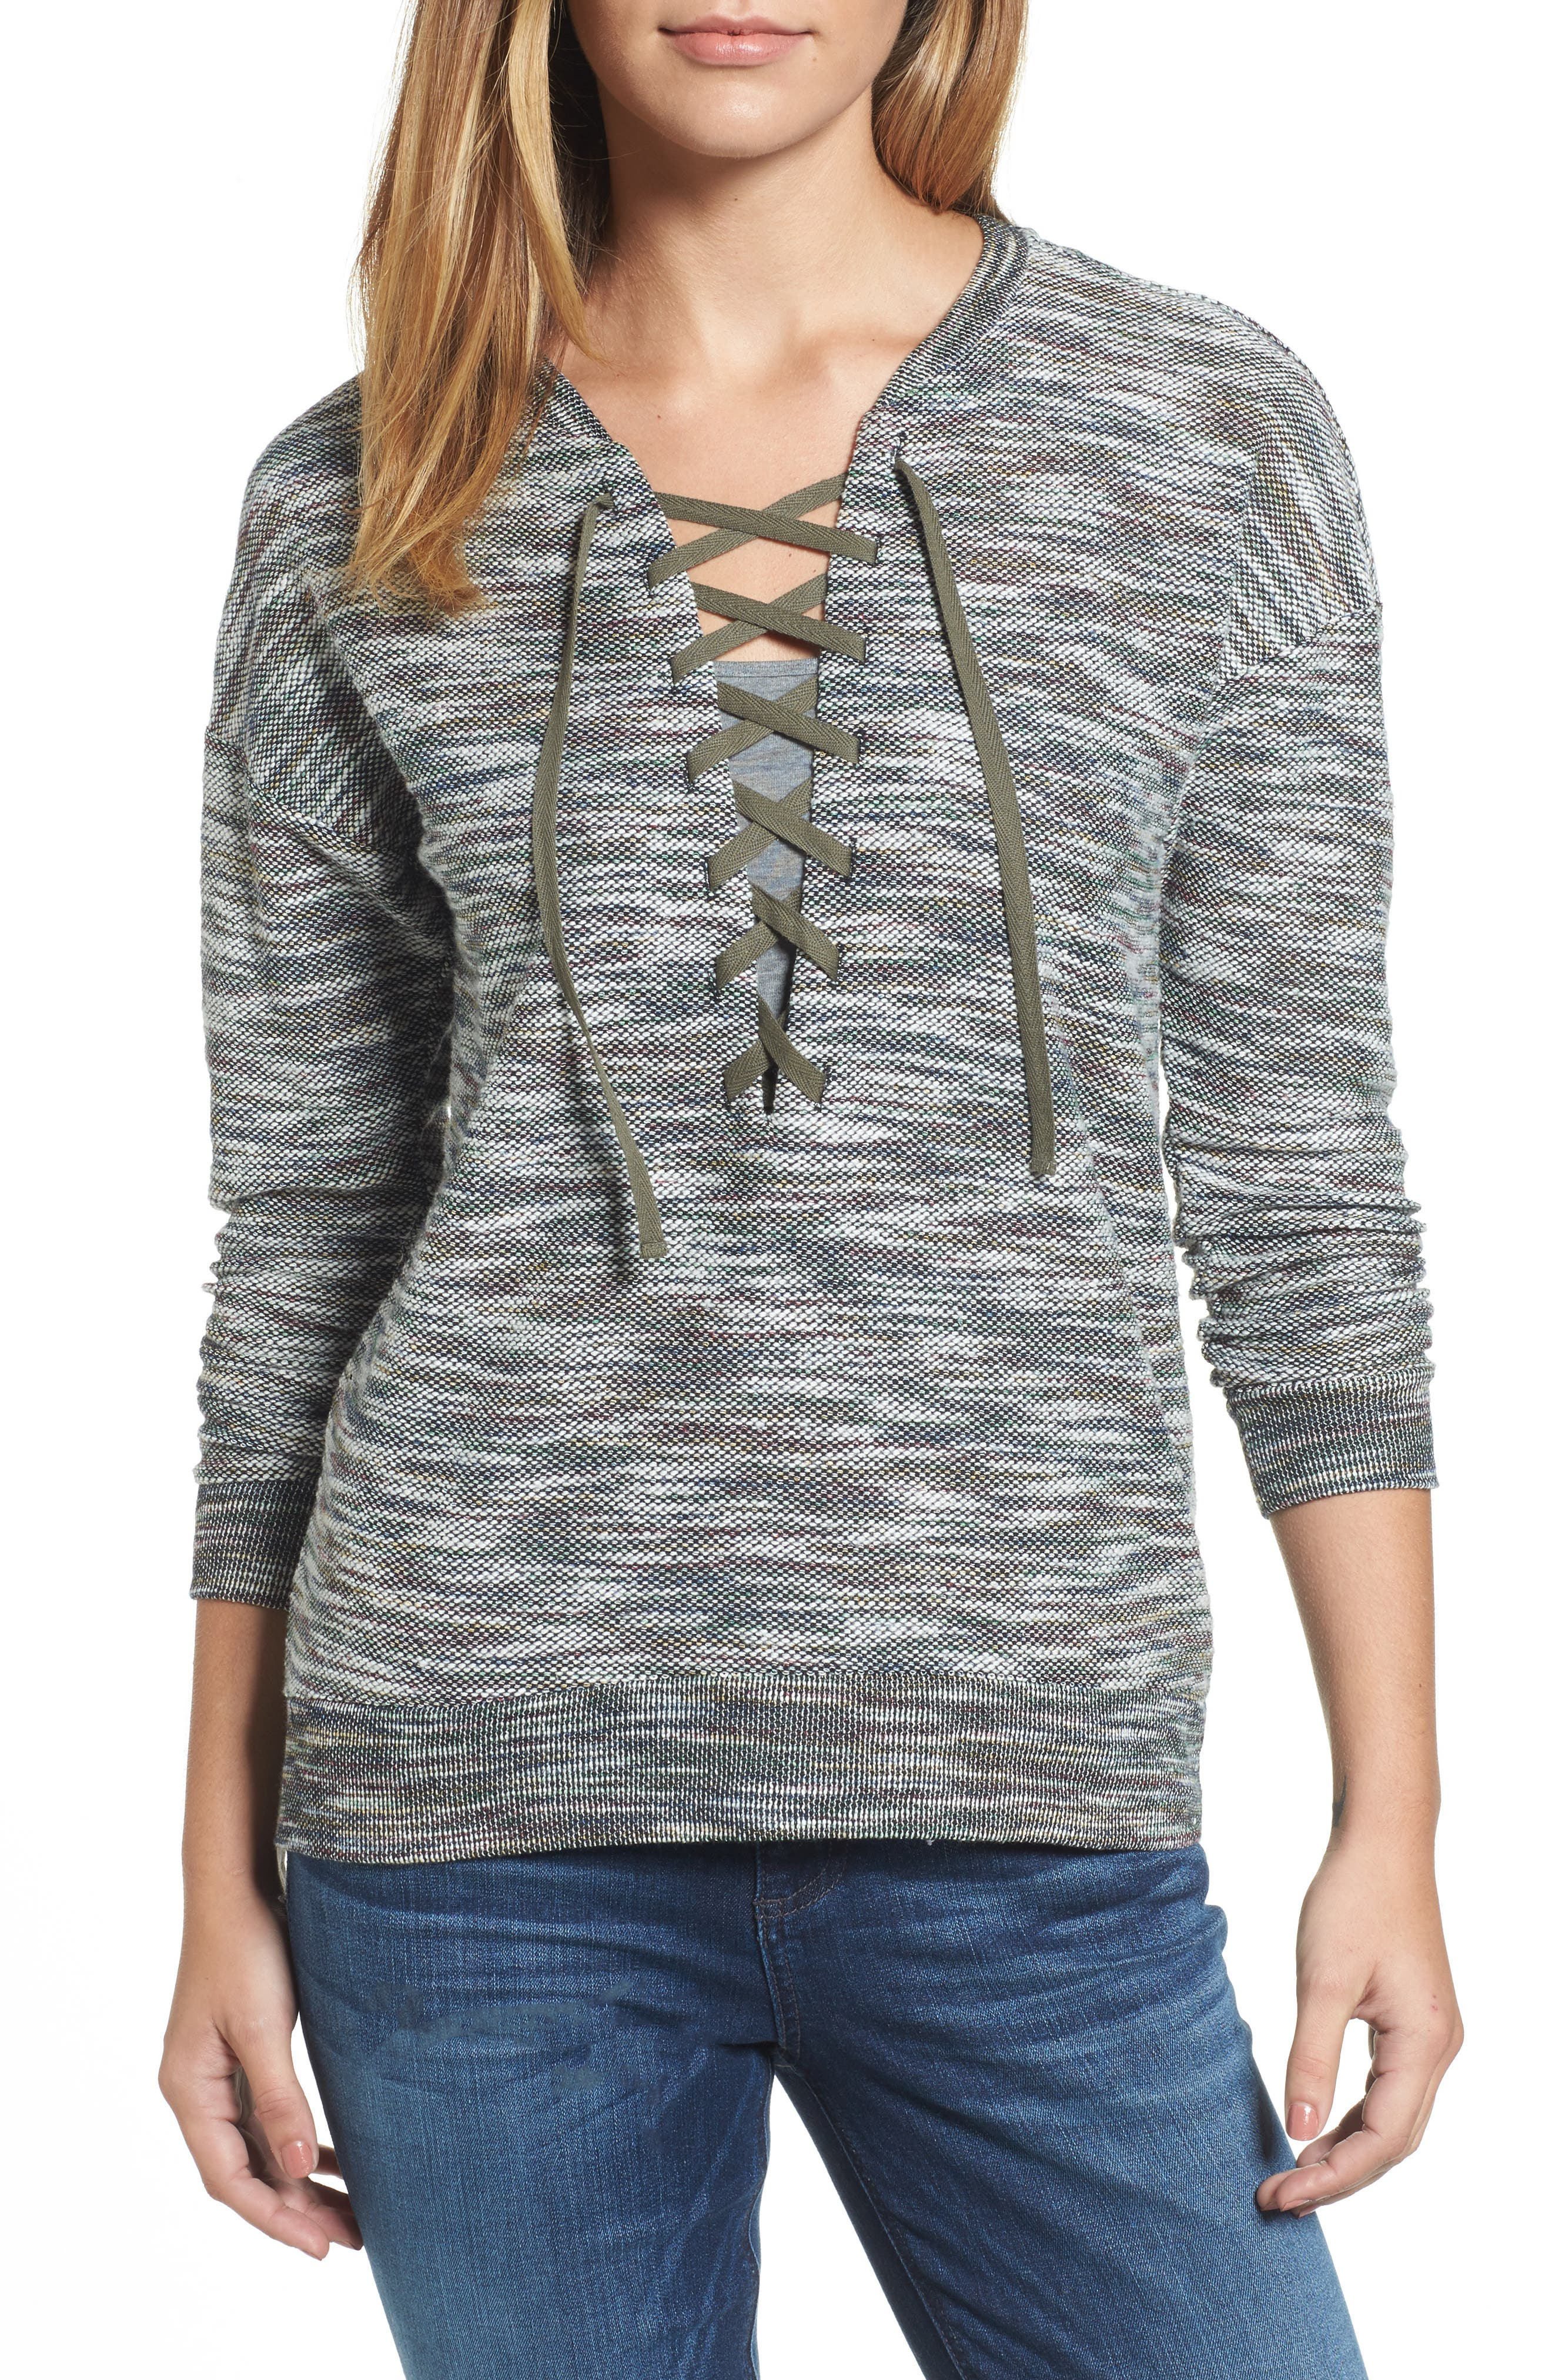 Everly Lace-Up Sweater,                         Main,                         color, 310